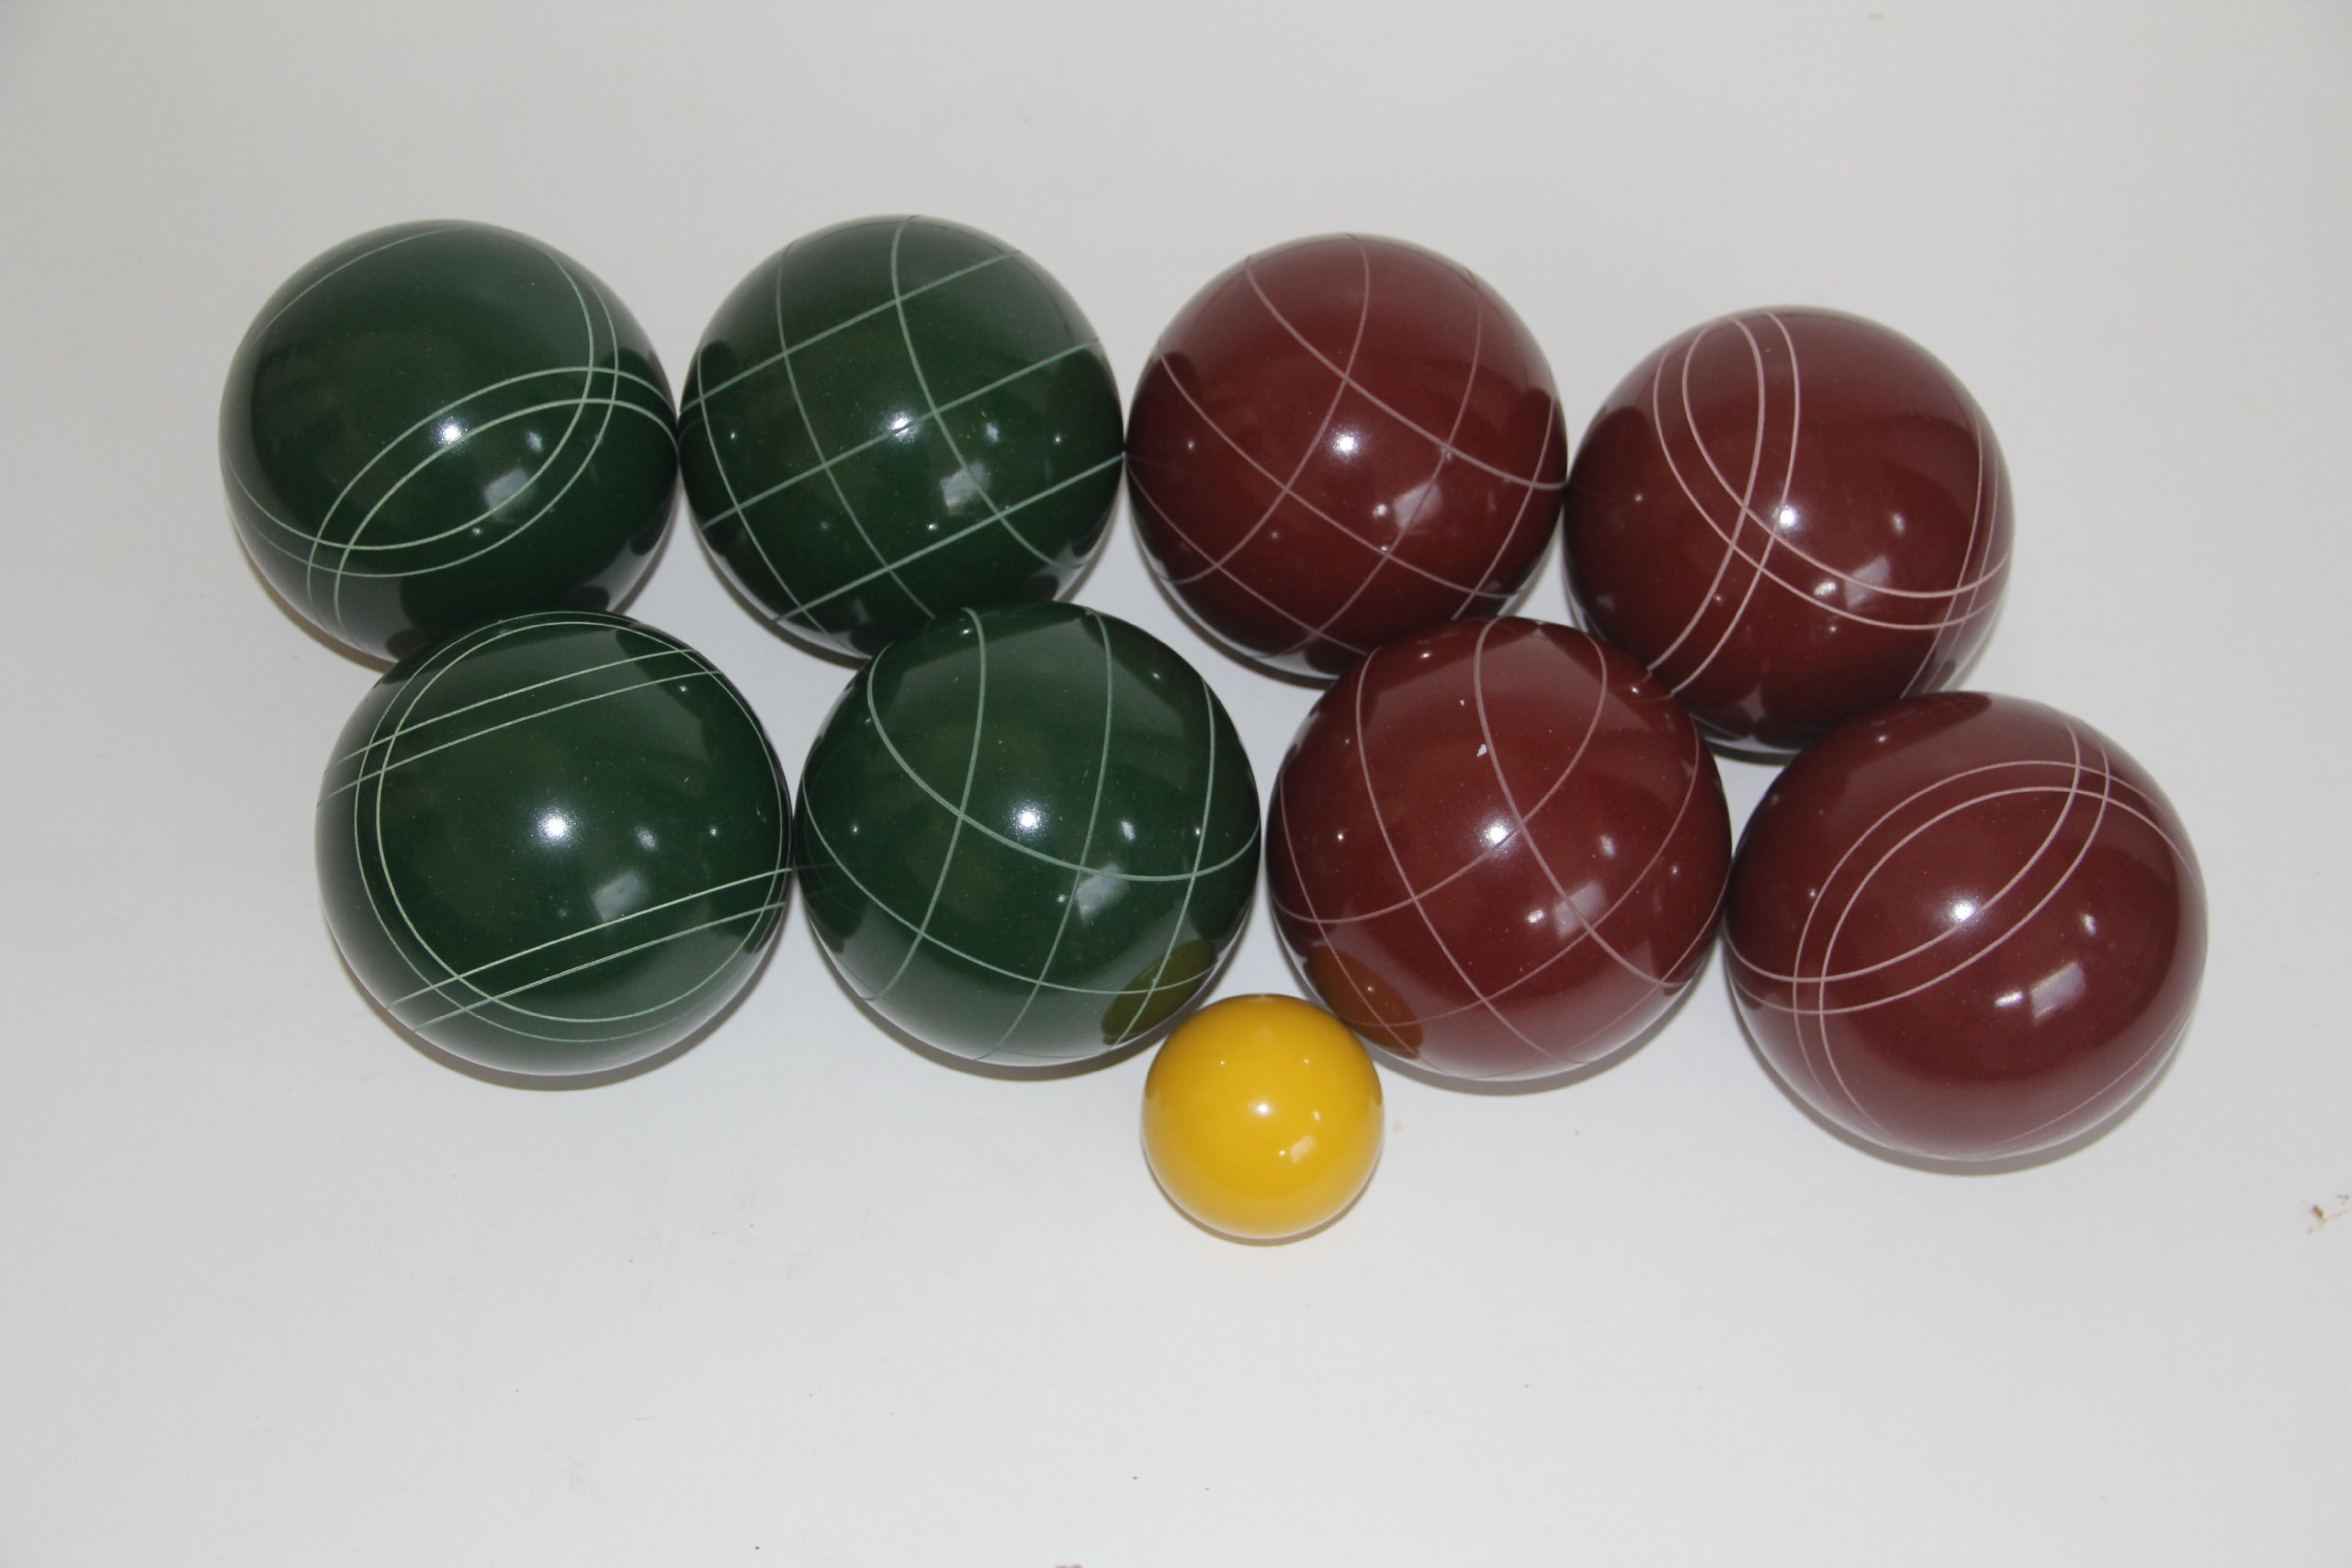 Premium Quality EPCO Tournament Set - 107mm Red and Green Bocce Balls - NO BAG OPTION [Toy] by Epco